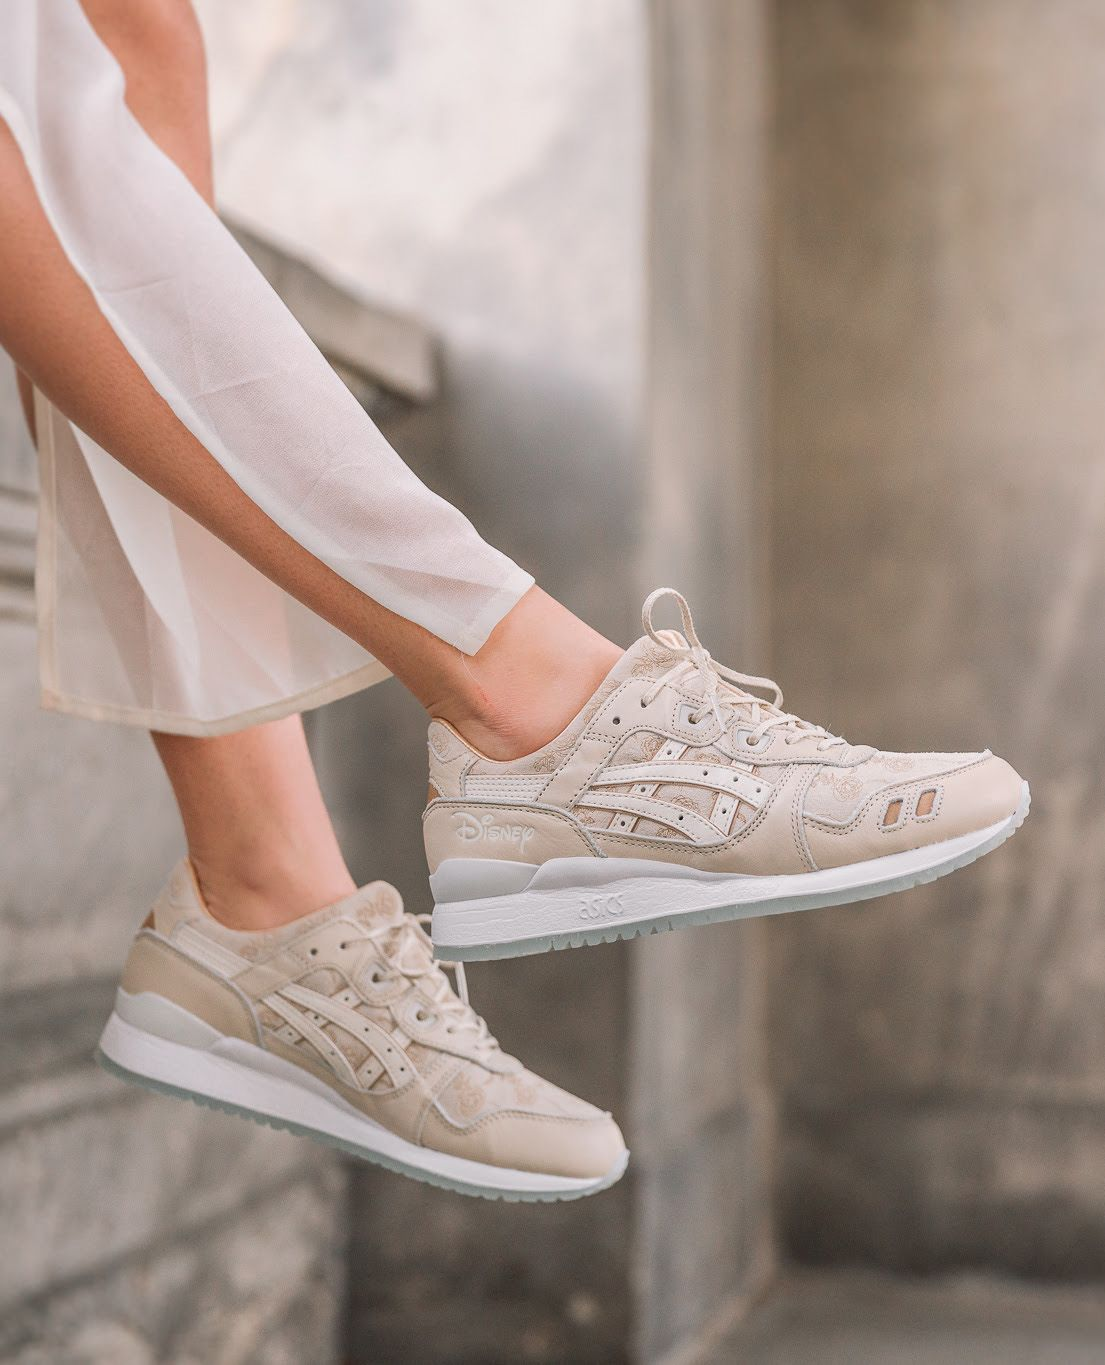 on foot disney x asics tiger gel lyte iii beauty and the beast